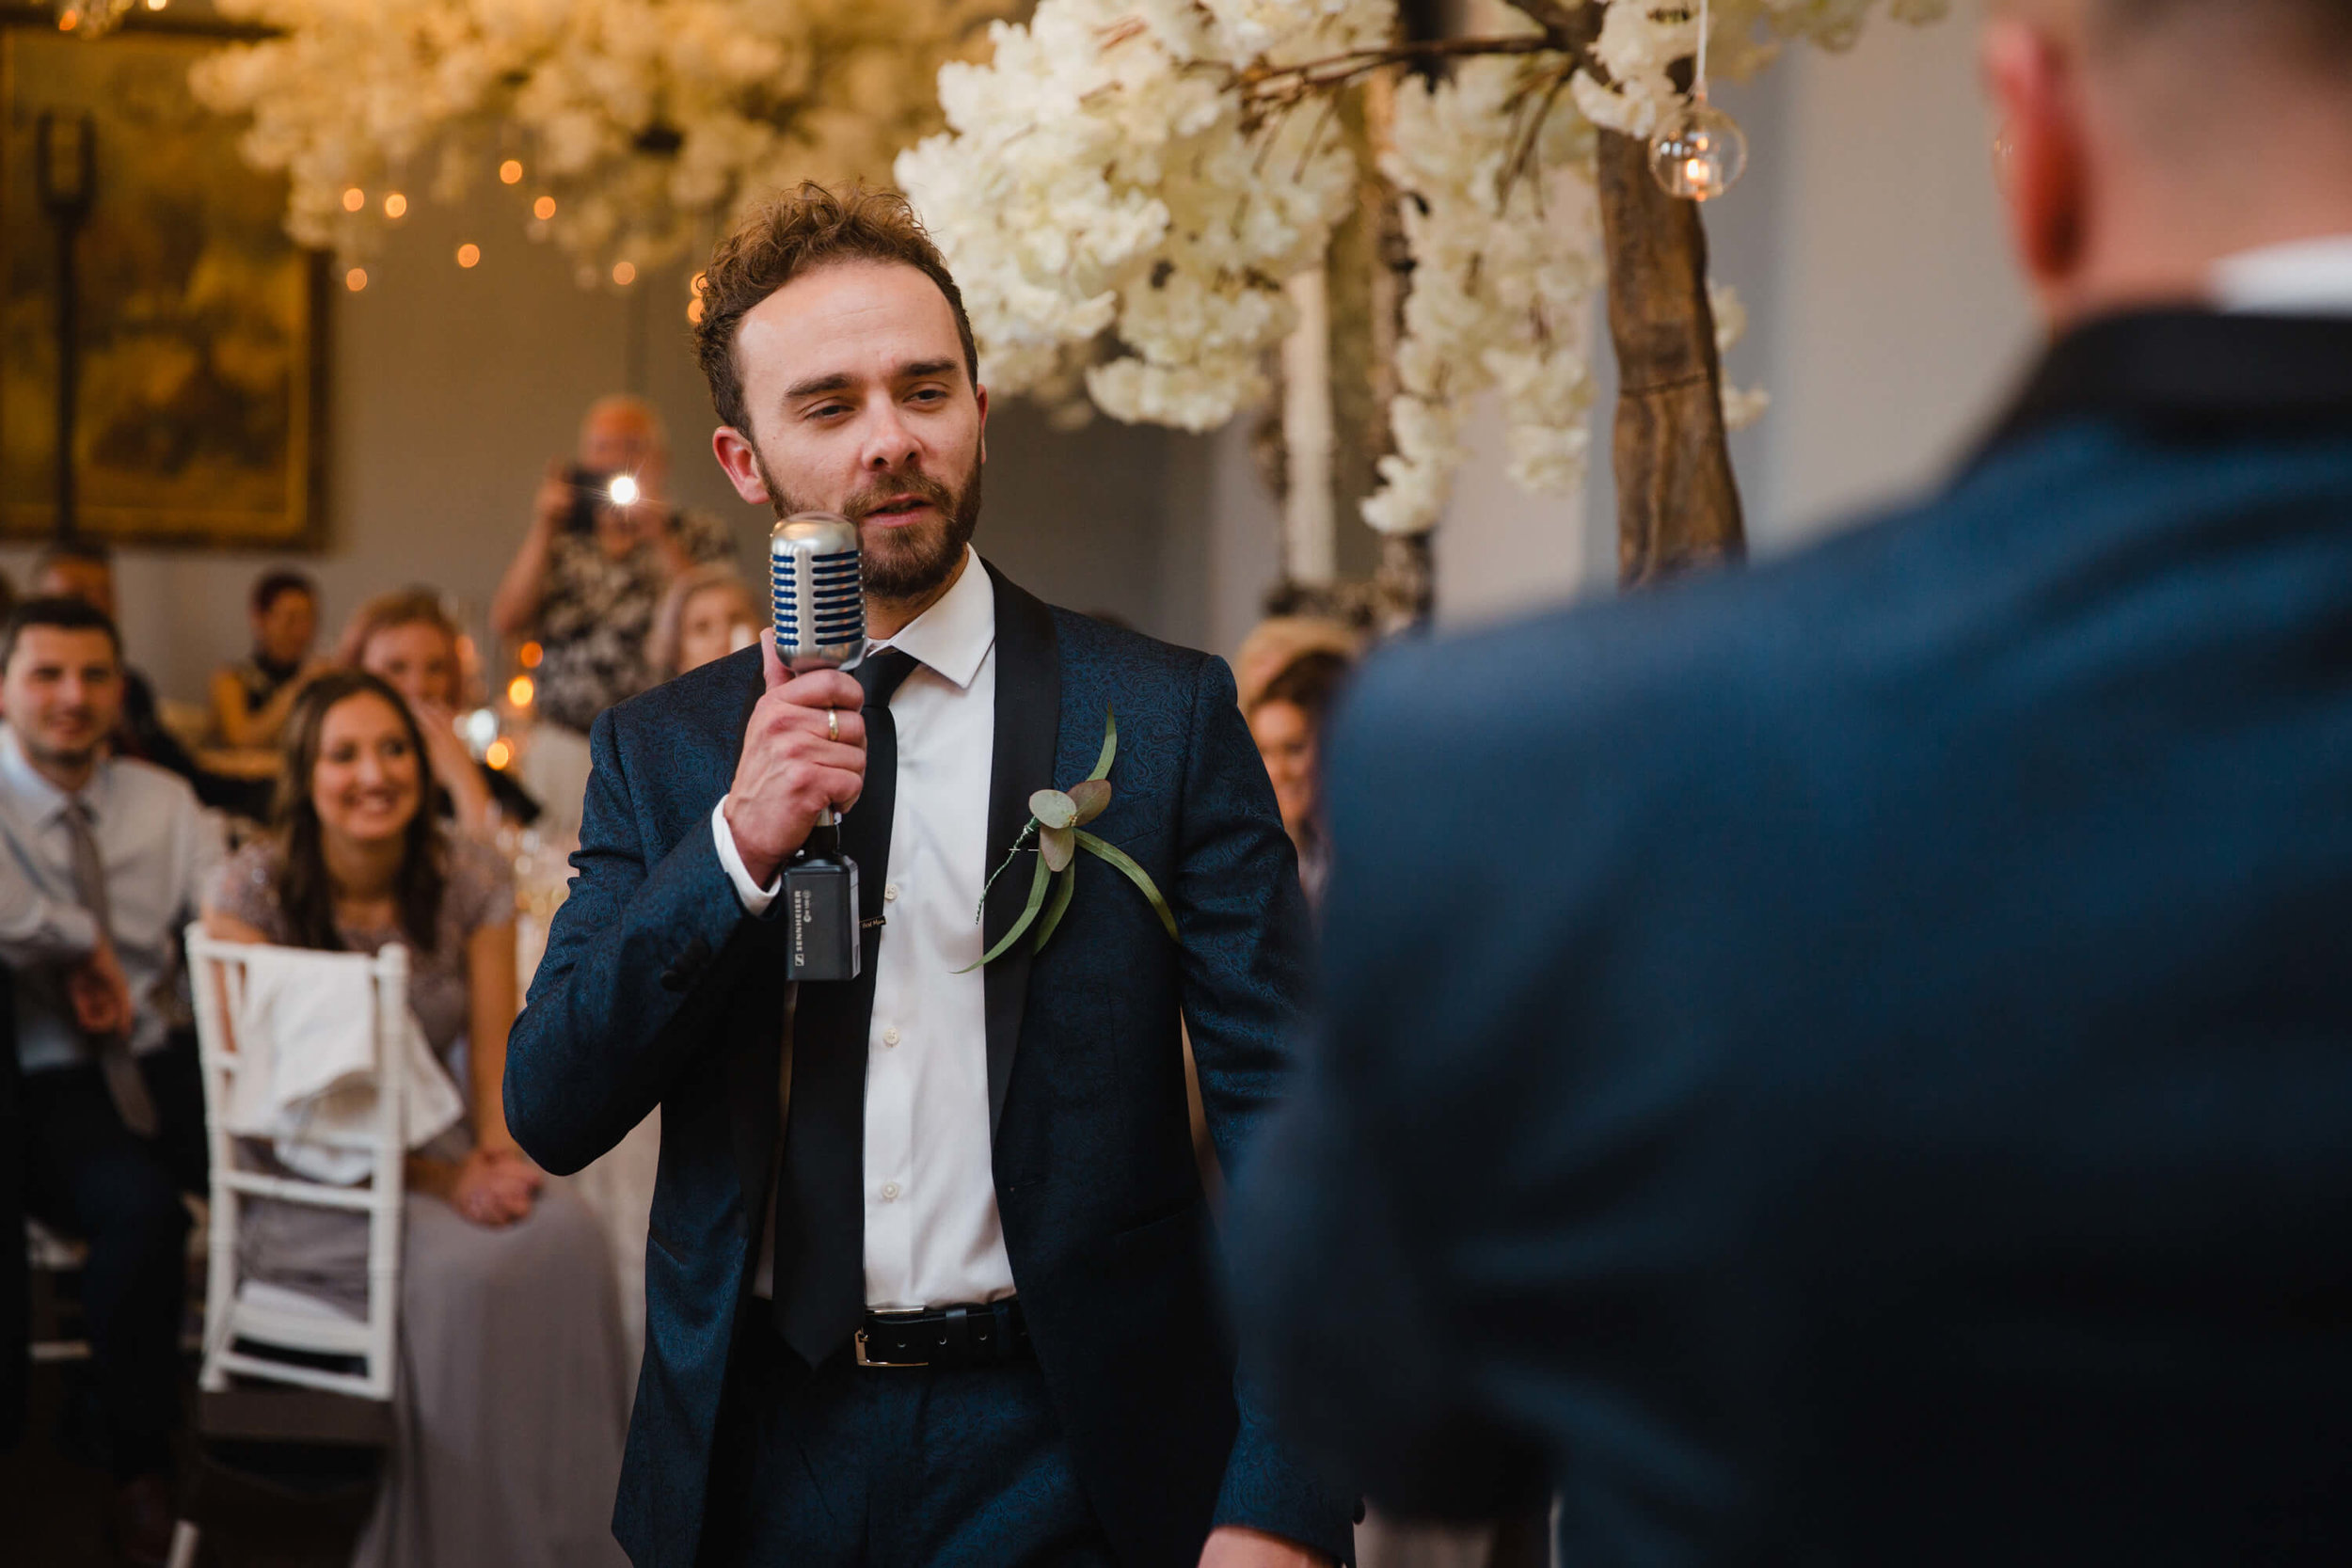 best man giving speech to guests